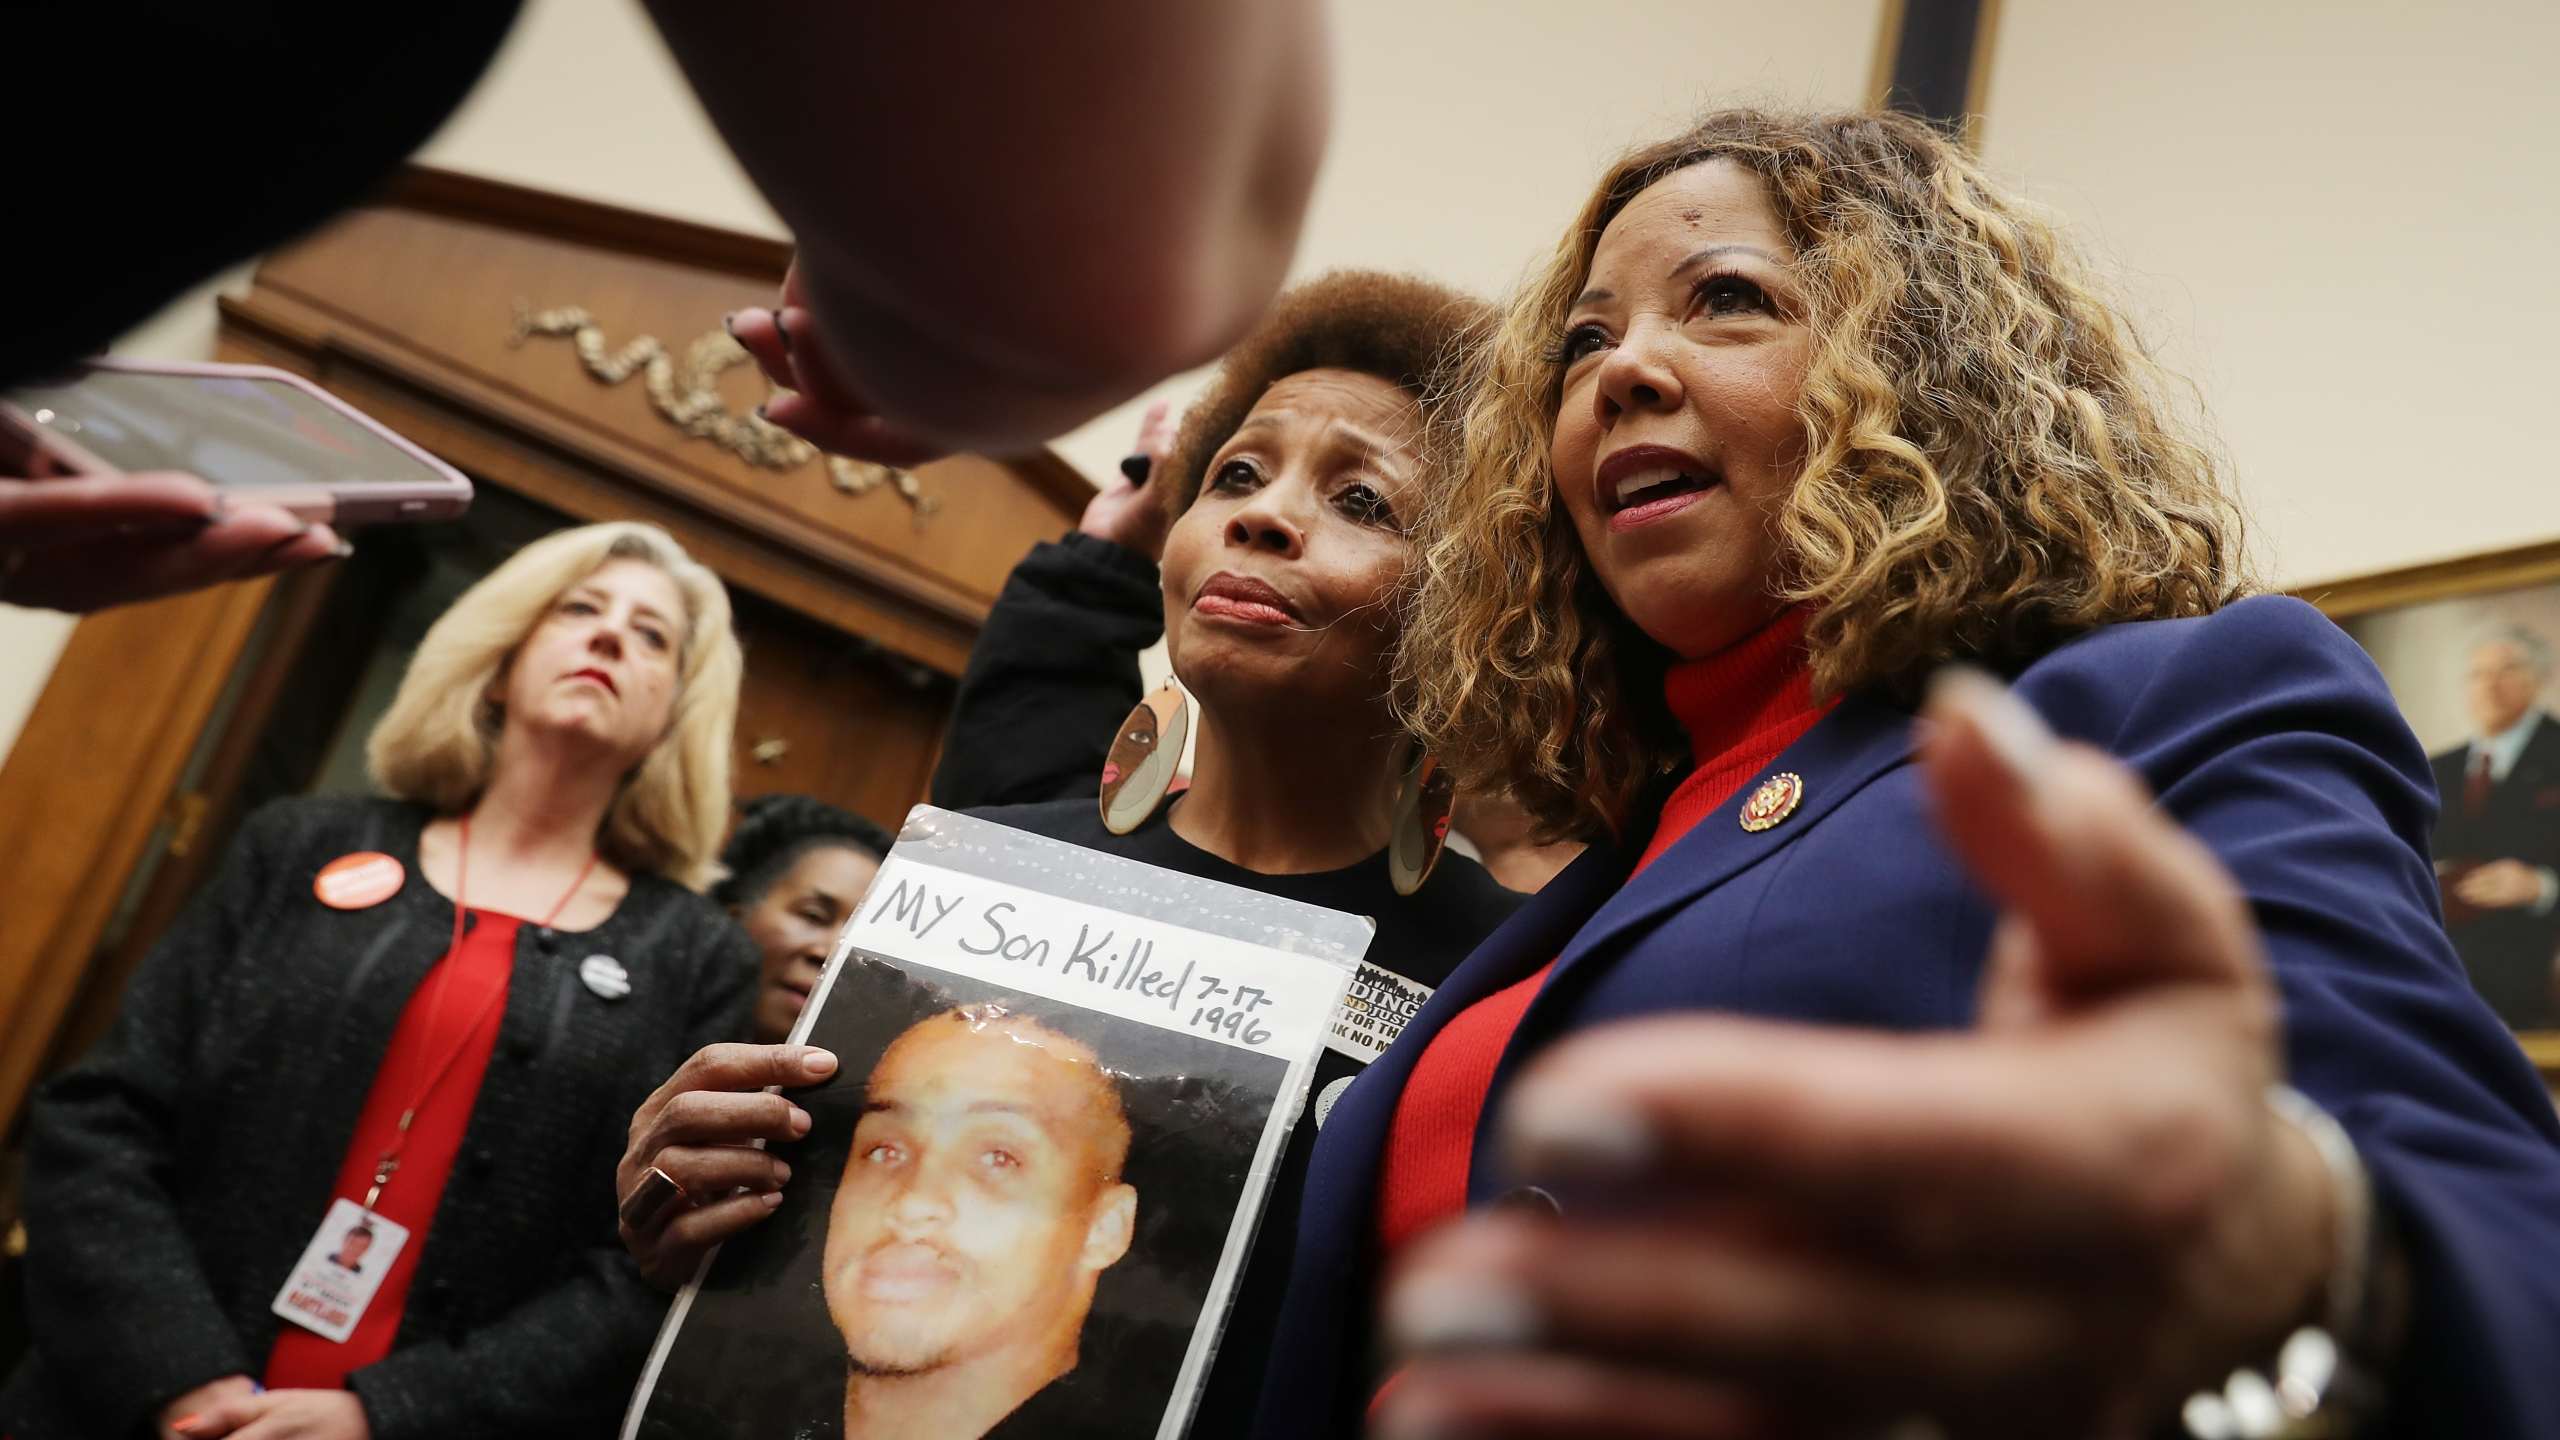 The Brady Campaign's Mattie Scott (C) and Rep. Lucy McBath (D-GA), both of who lost sons to gun violence, pose for photographs before a hearing on gun violence legislation in the Rayburn House Office Building on Capitol Hill February 06, 2019 in Washington, DC. (Credit: Chip Somodevilla/Getty Images)